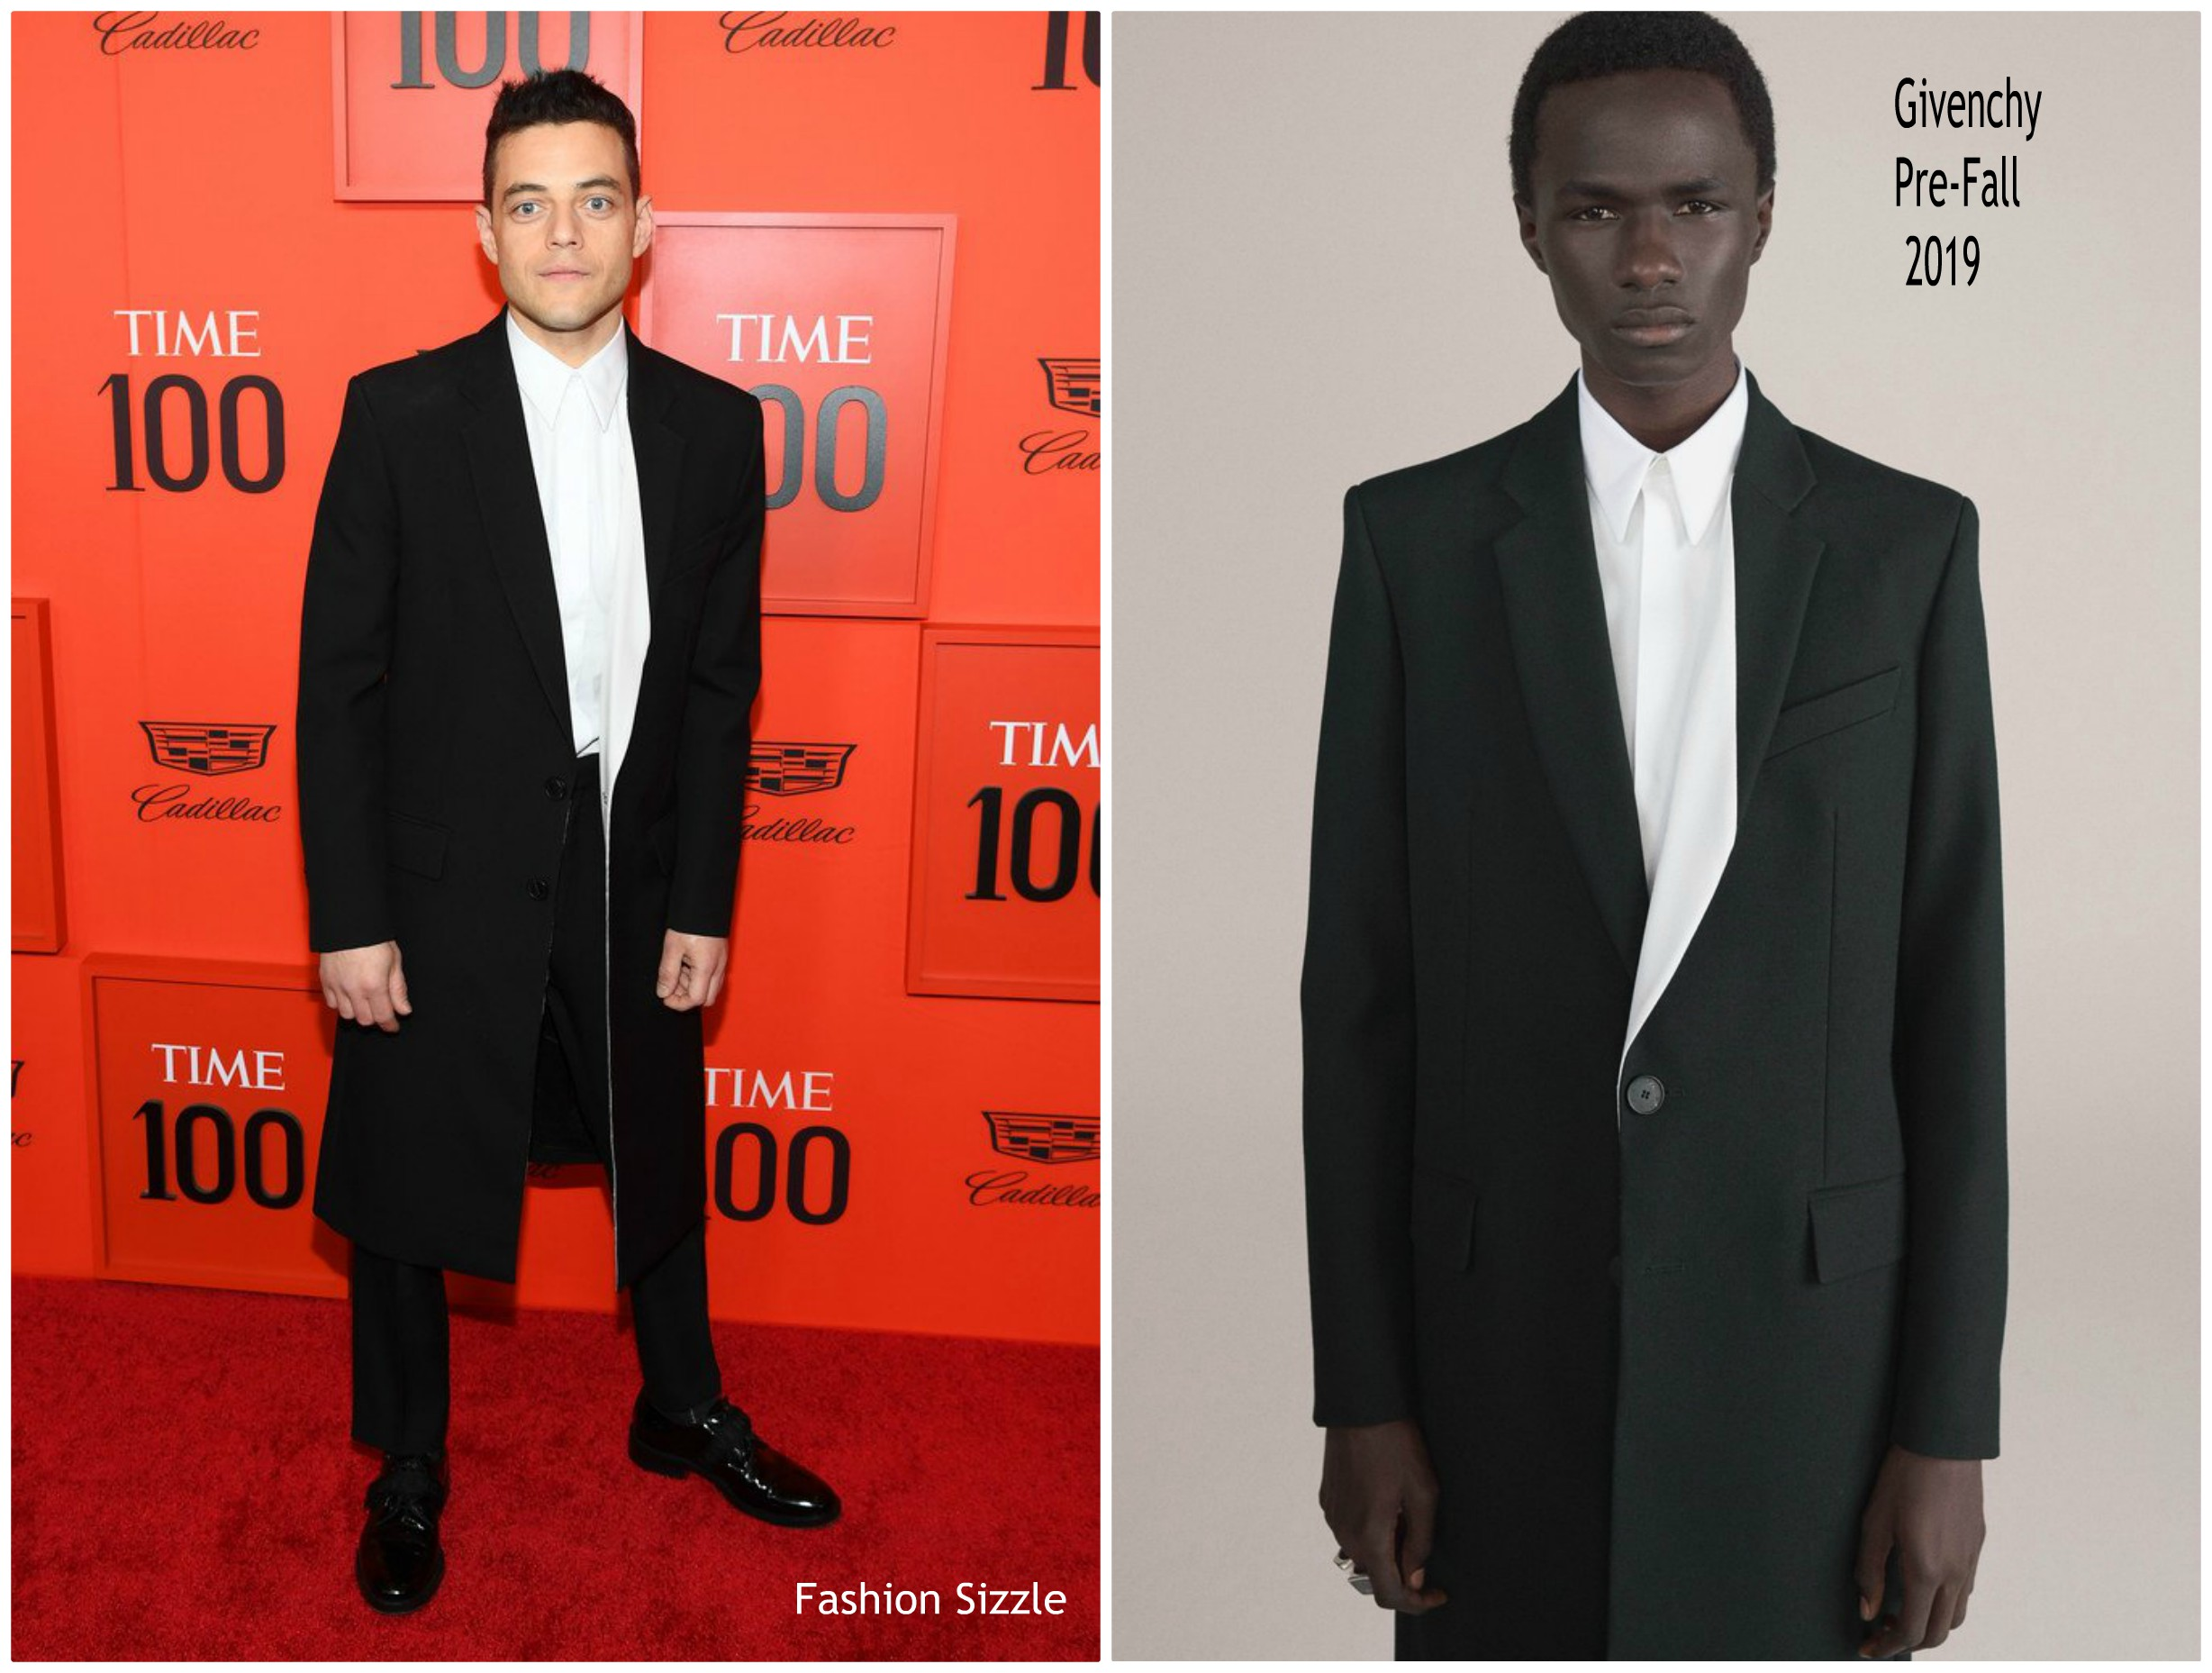 rami-malek-in-givenchy-time-100-gala-2019